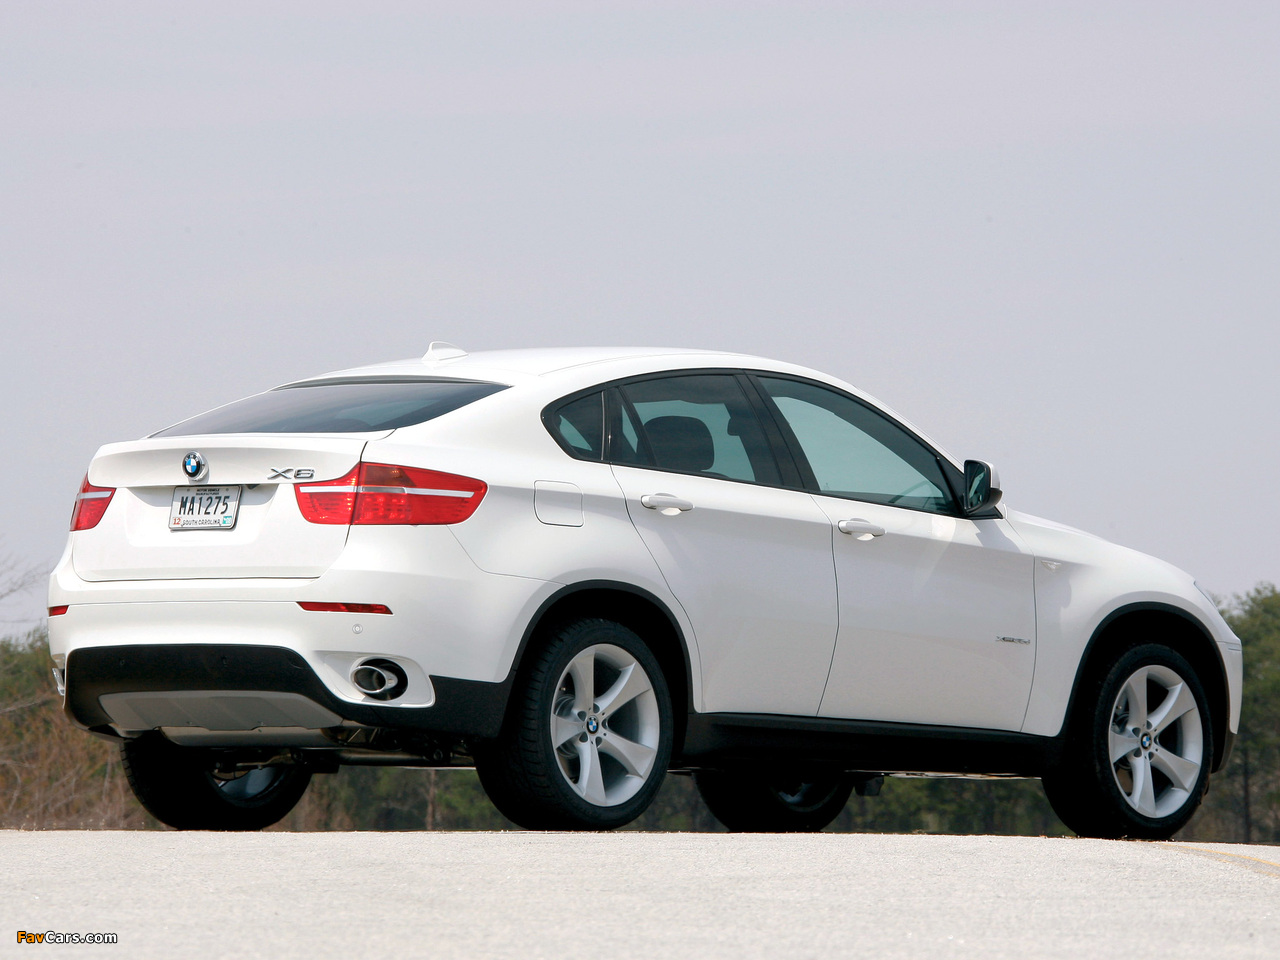 Bmw X6 Xdrive35d 71 2008 Pictures 1280x960